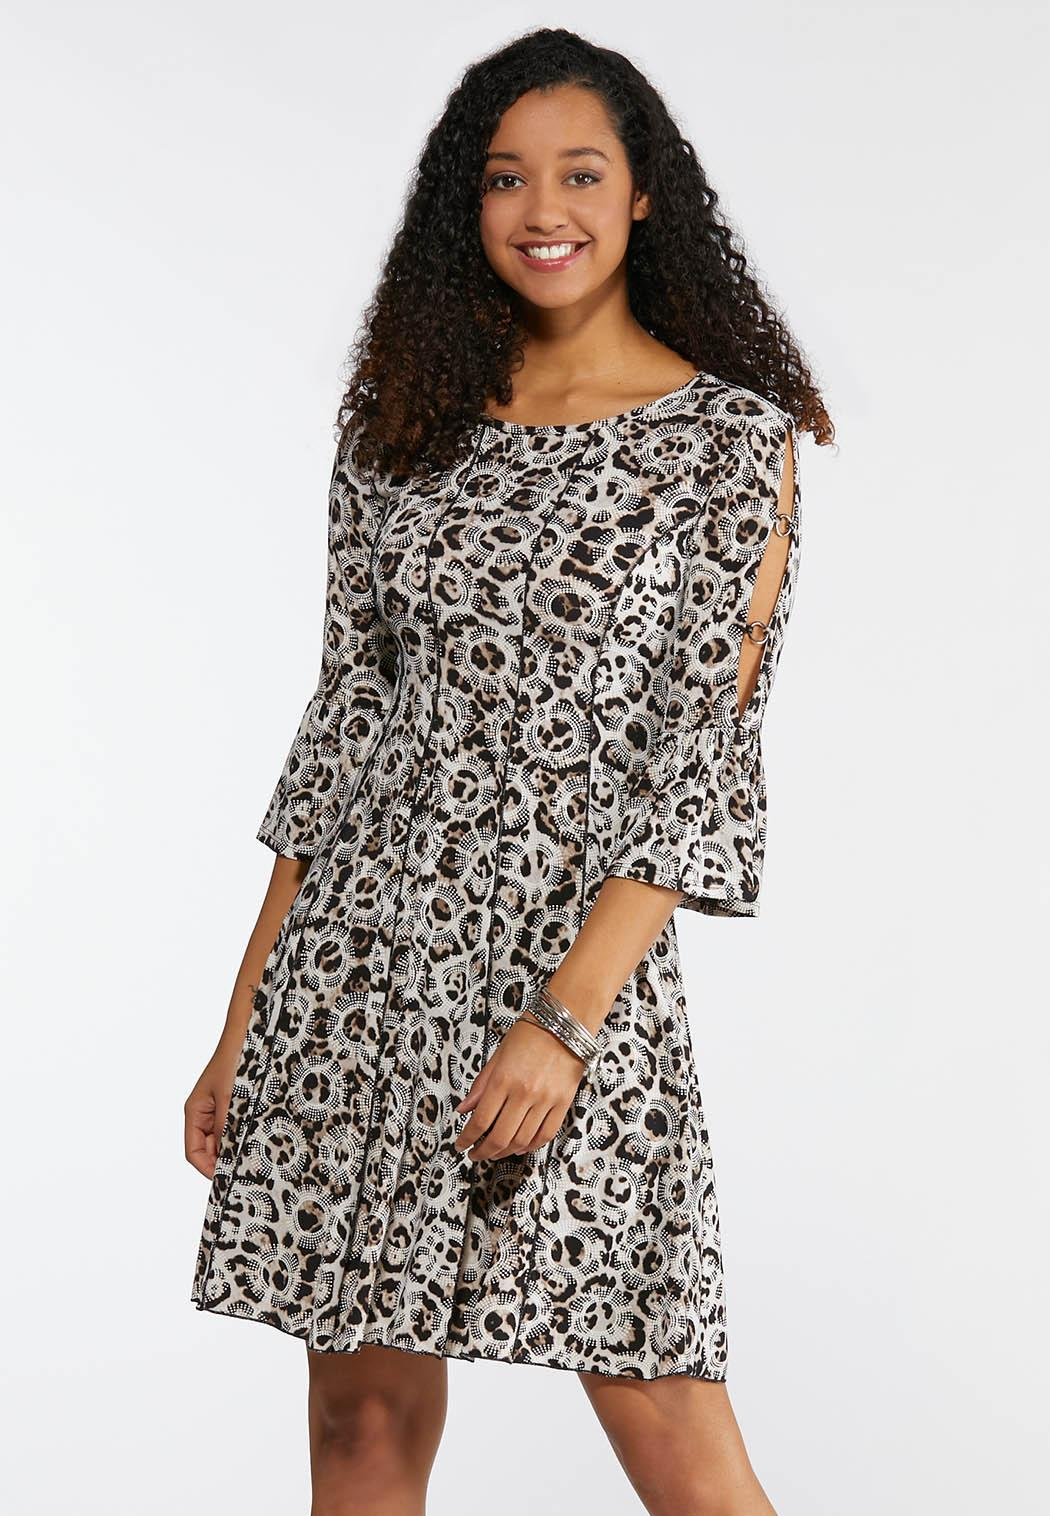 e8bf986995e Plus Size Embellished Animal Print Dress A-line   Swing Cato Fashions